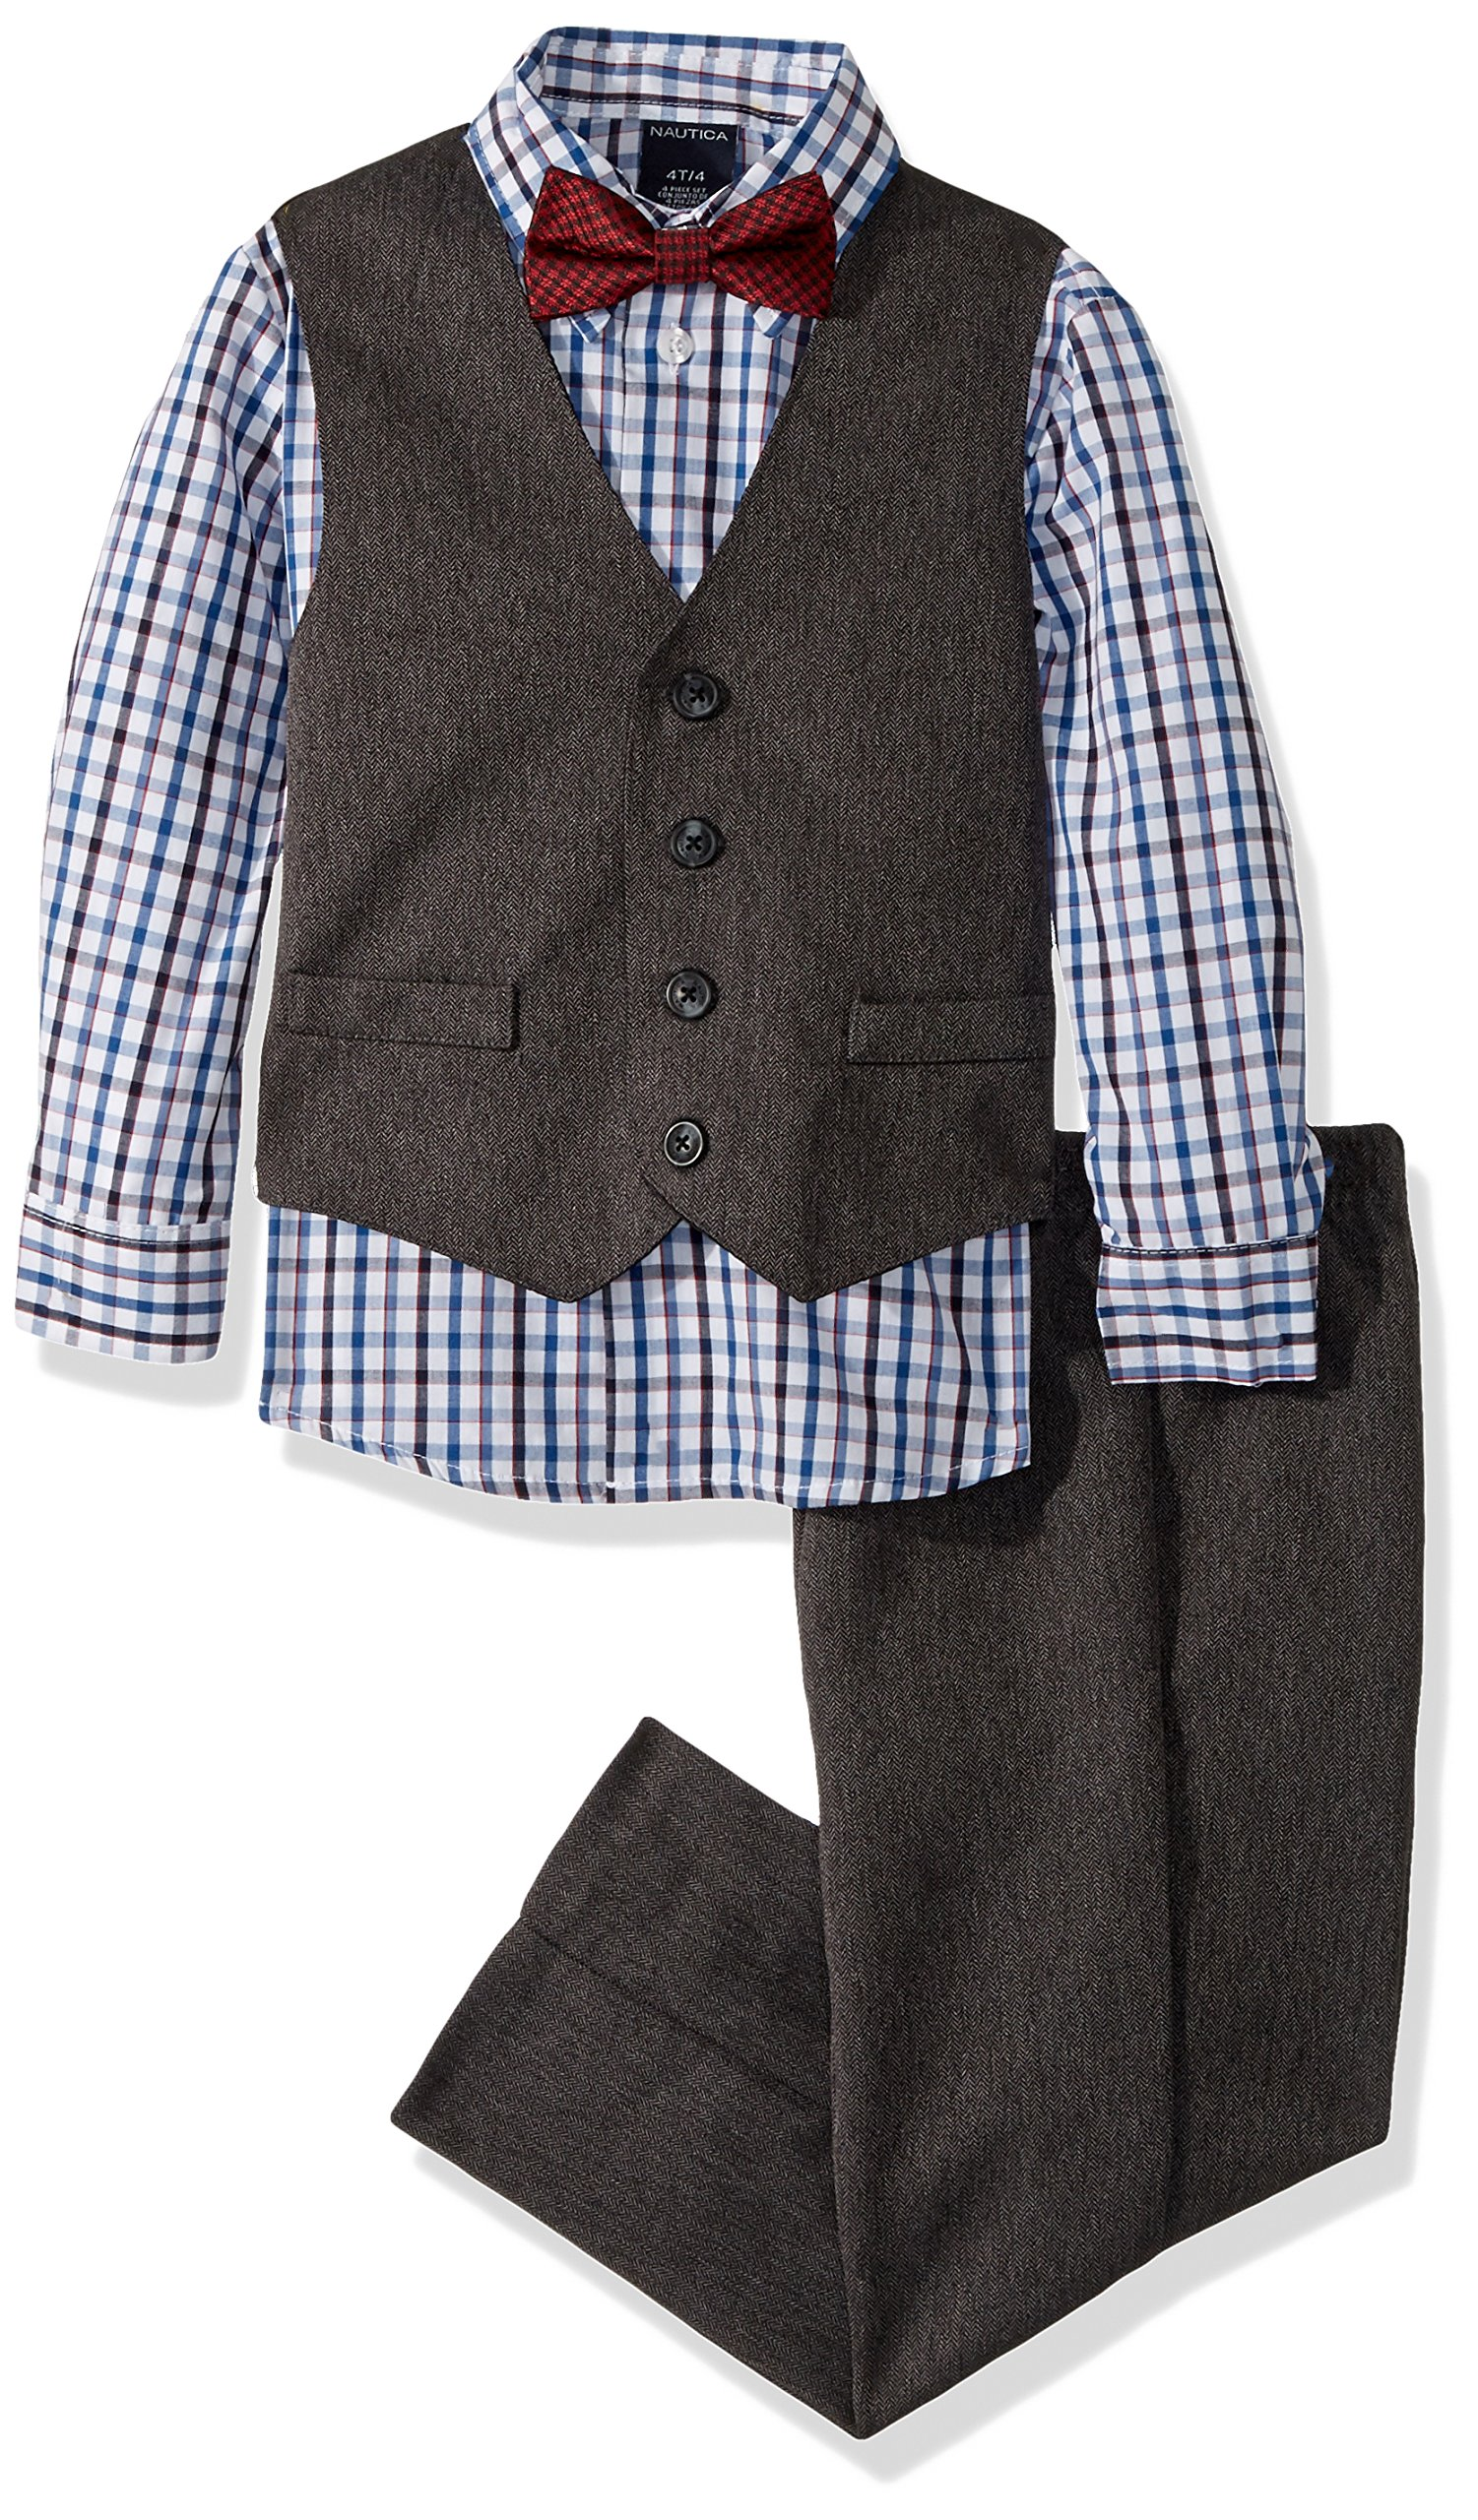 Nautica Little Boys' Set with Vest, Pant, Shirt, and Bow Tie, Red Herringbone, 6